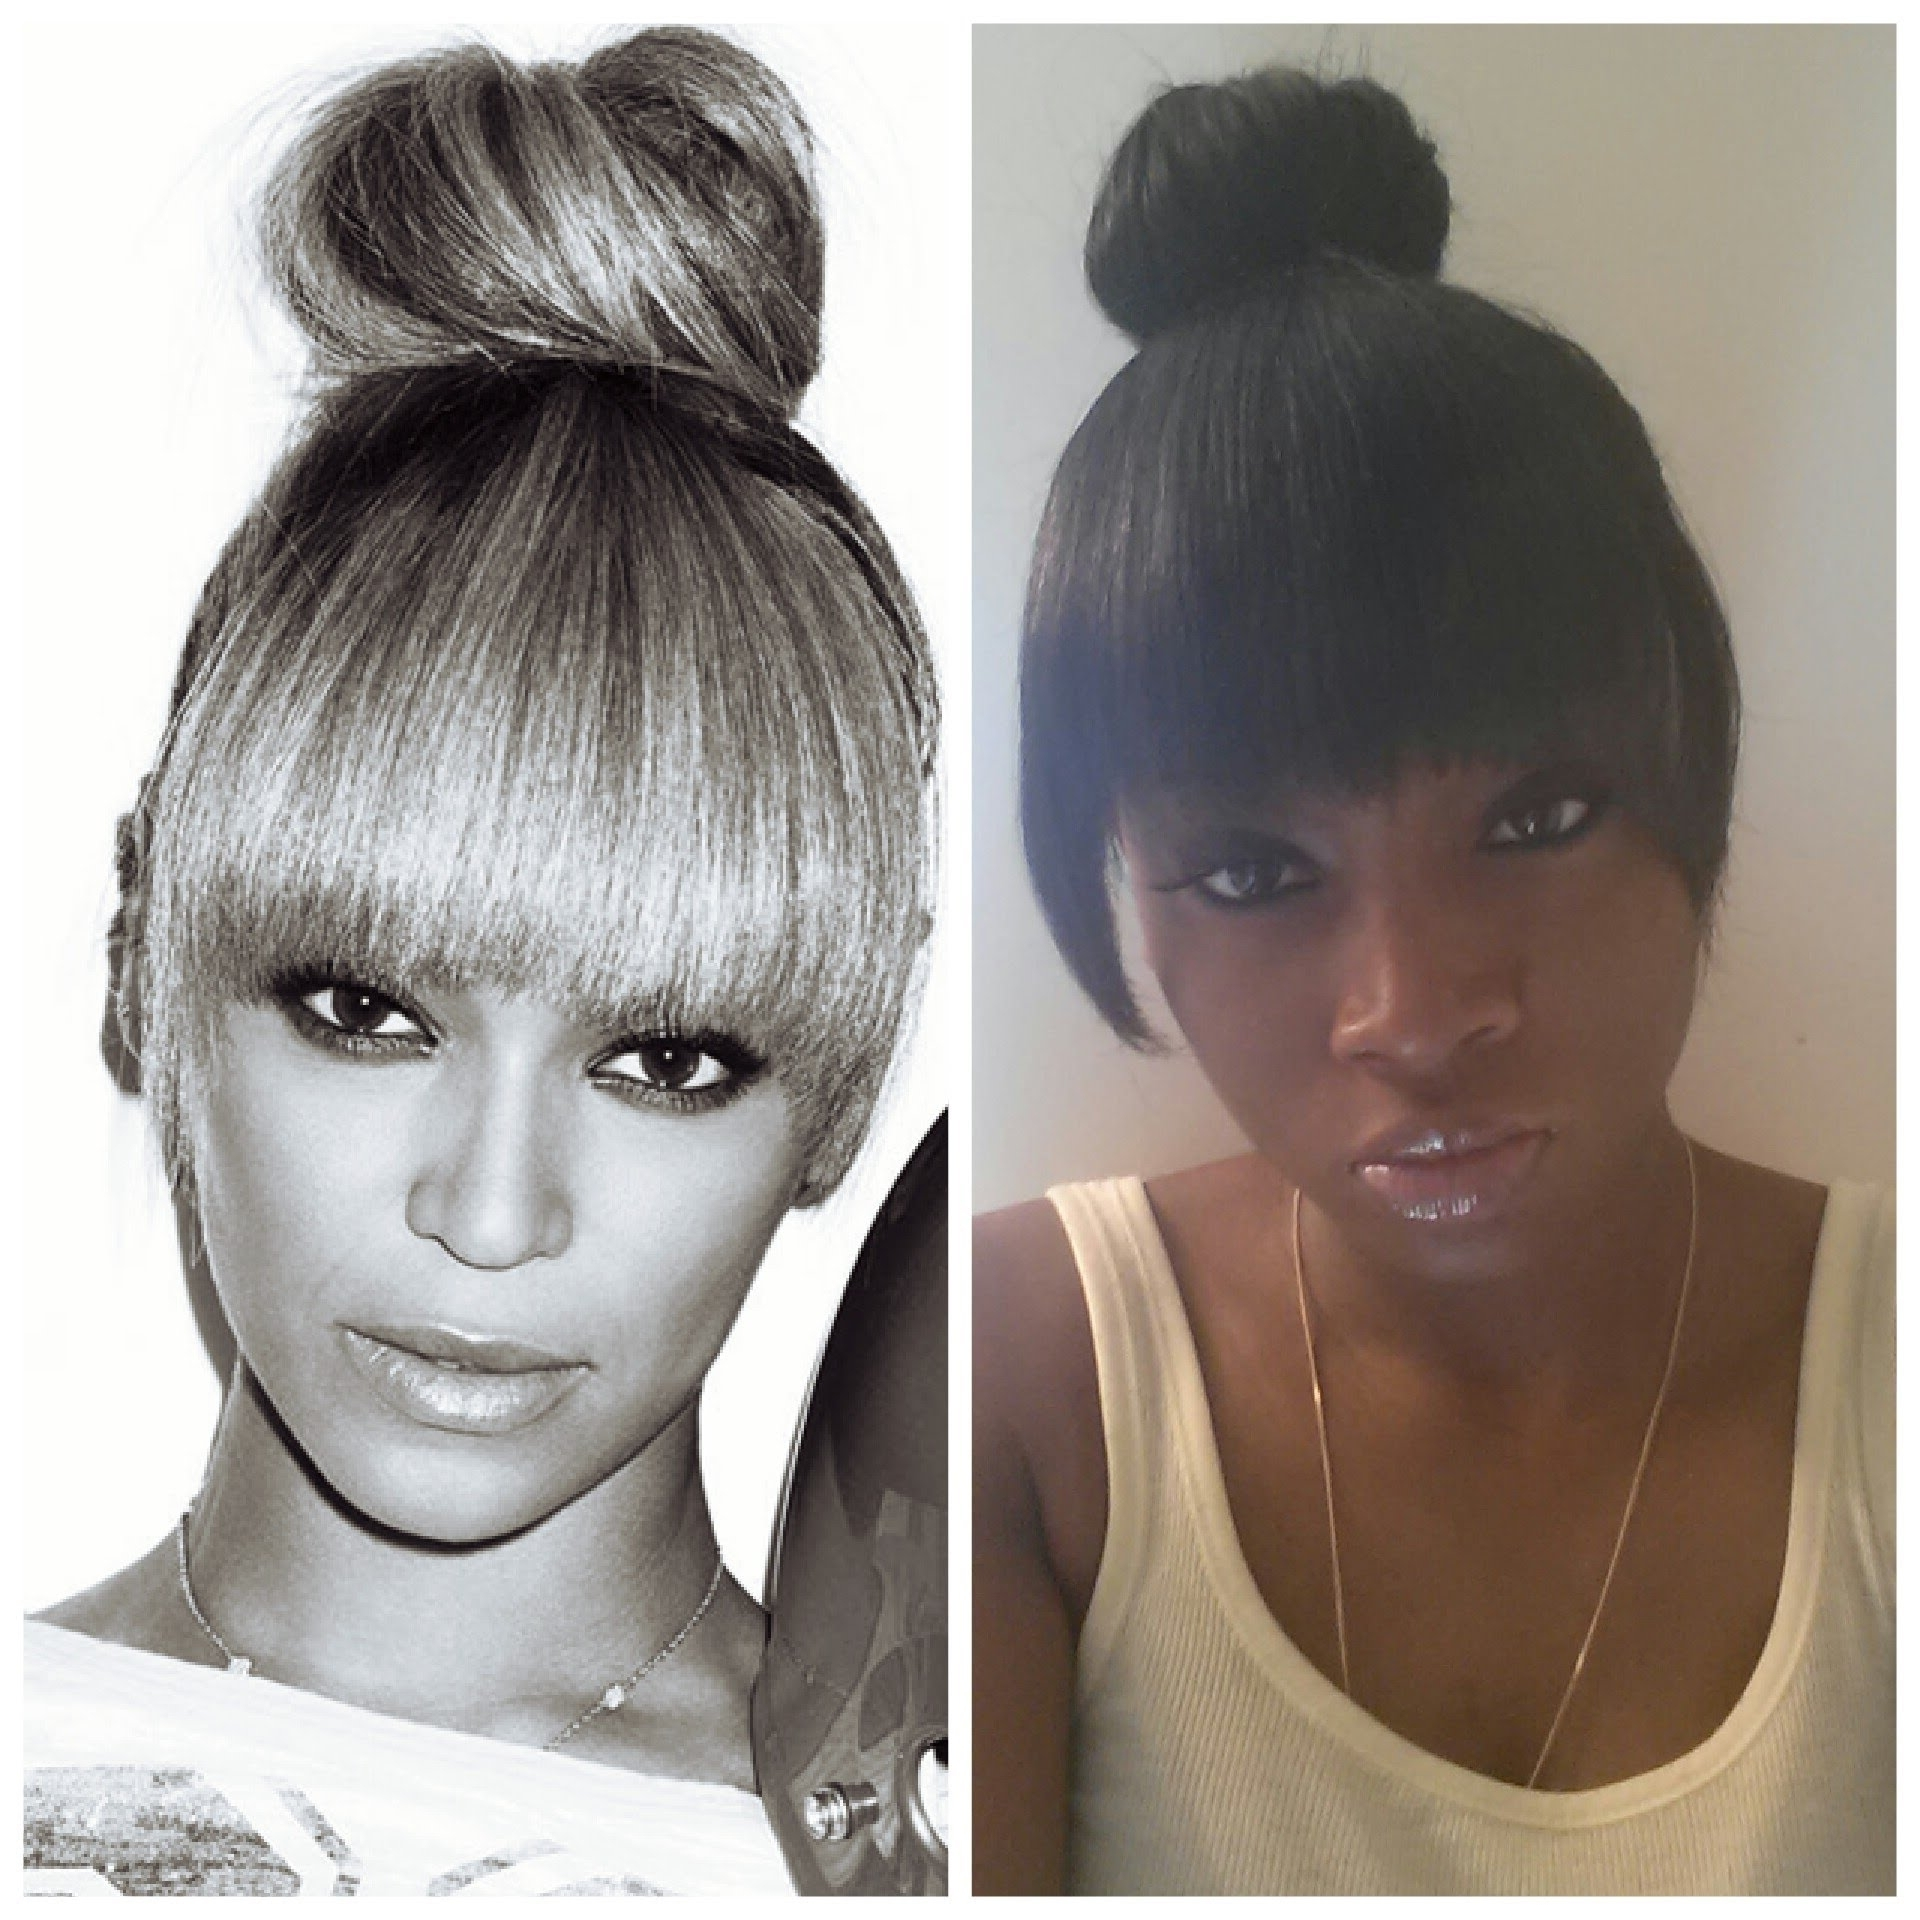 Beyonce Inspired High Bun With Bang Tutorial – Youtube Regarding Updo Hairstyles With Fringe Bangs (View 9 of 15)